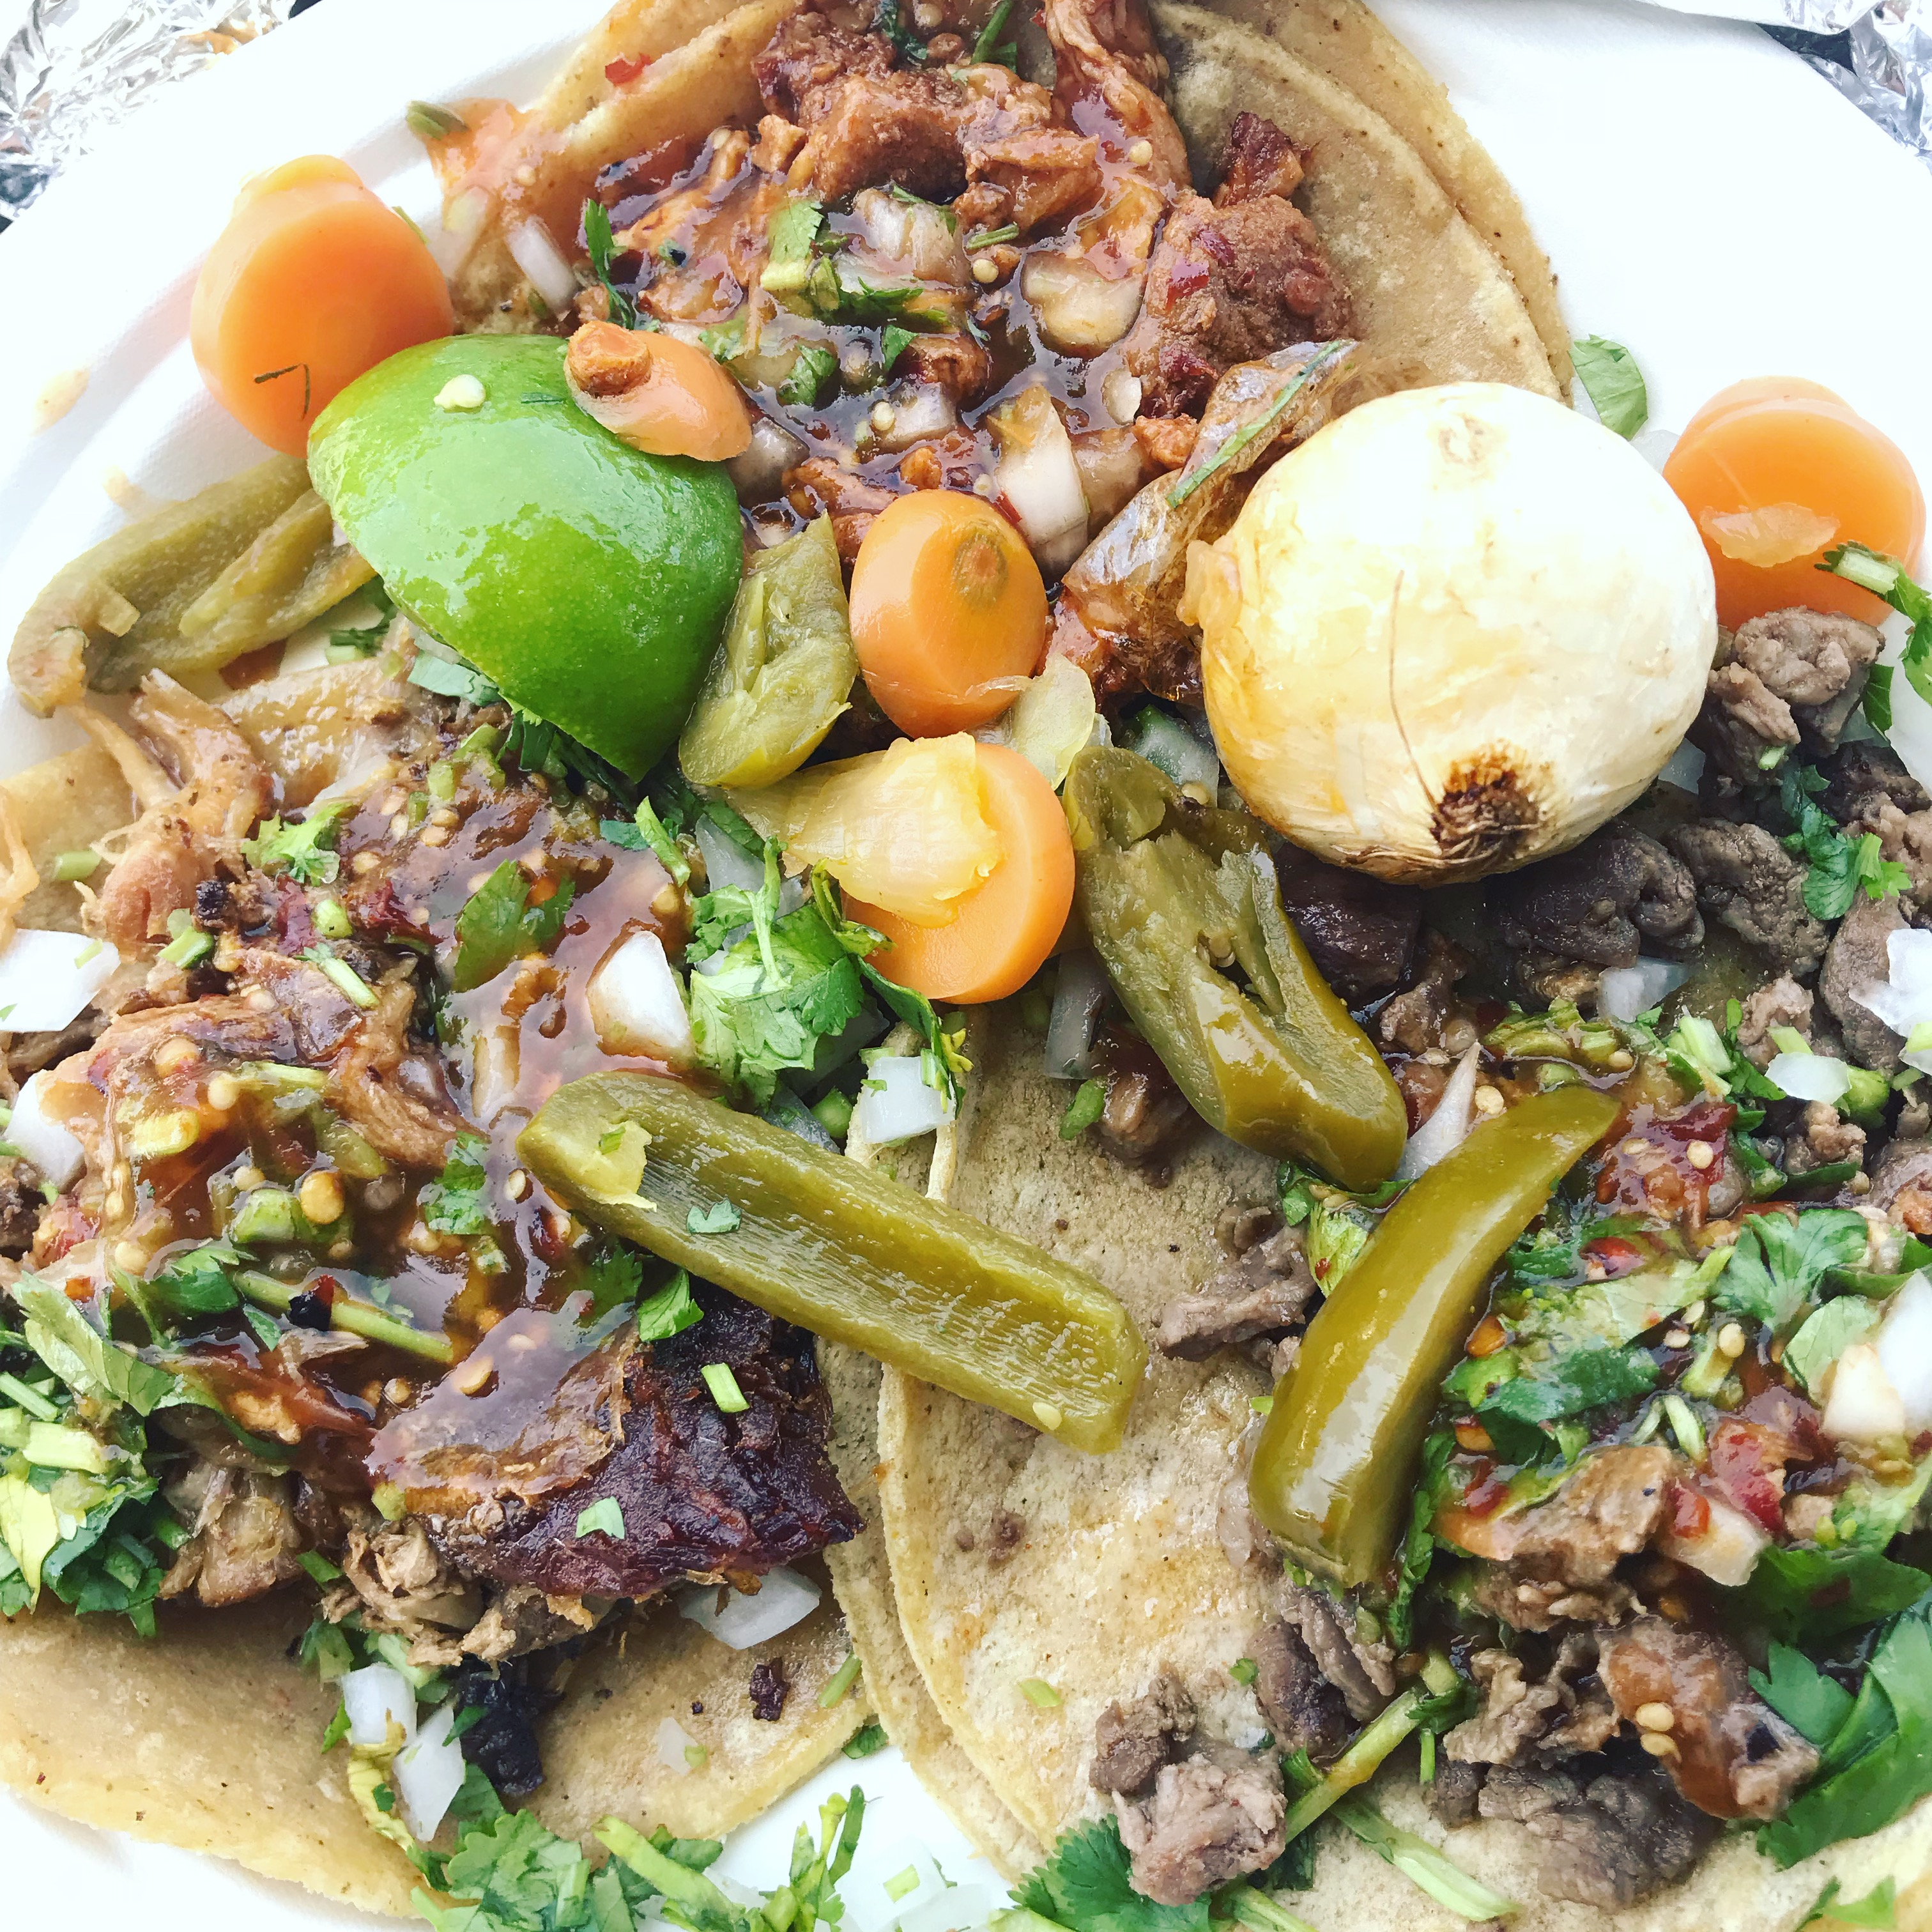 Parking lot tacos, Ms. Adventures in Italy, by Sara Rosso